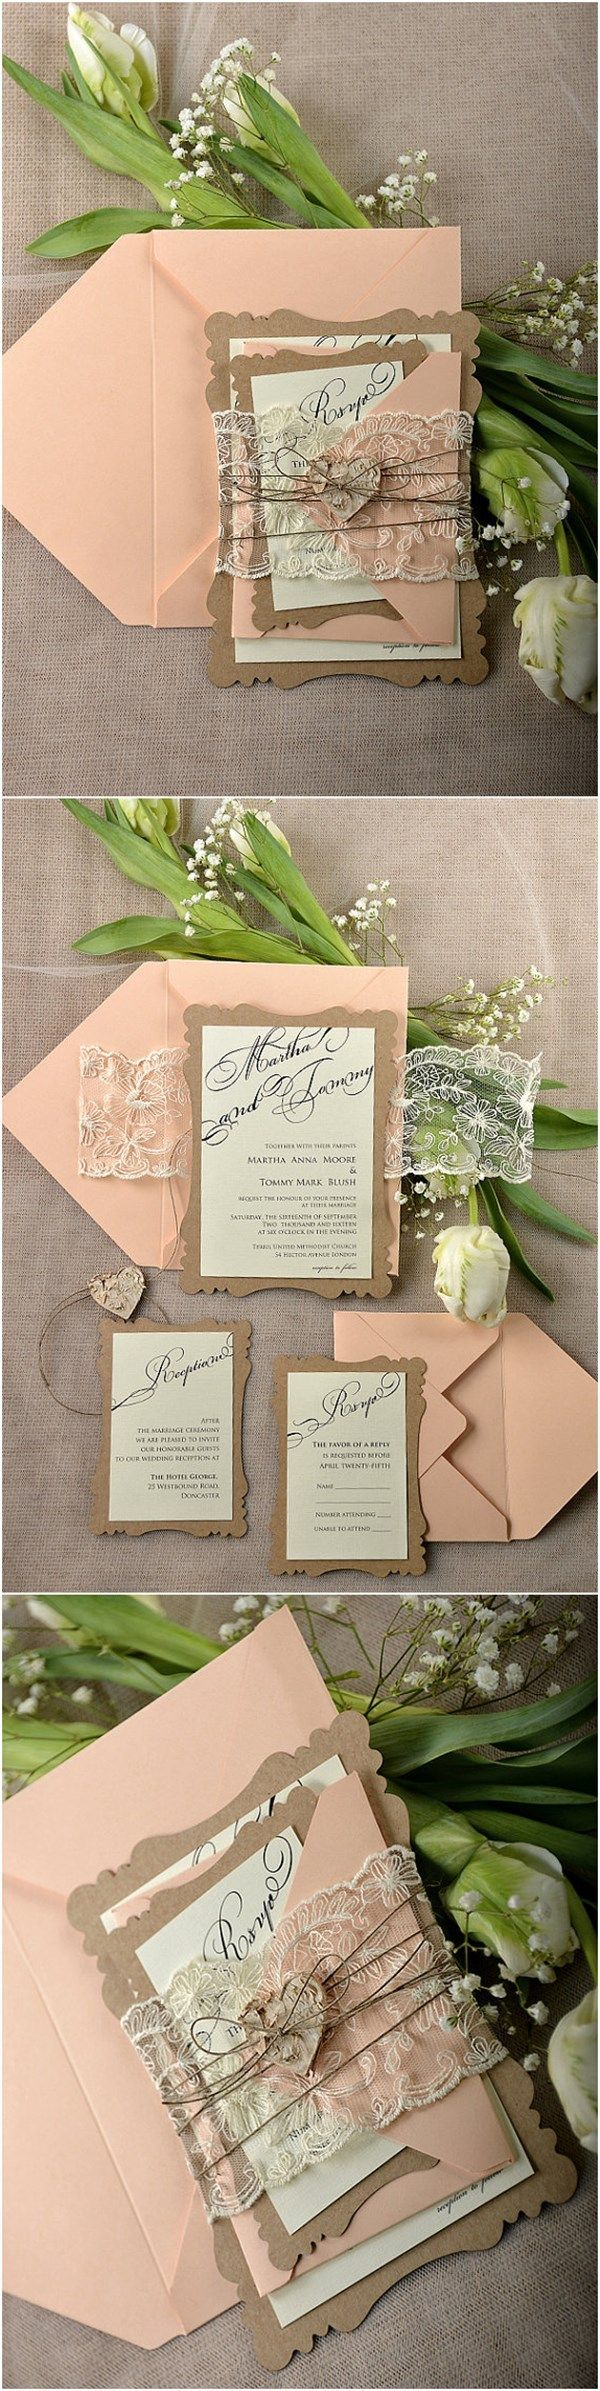 Rustic Eco Peach Lace Laser Cut Wedding Invitation Kits - Deer Pearl Flowers